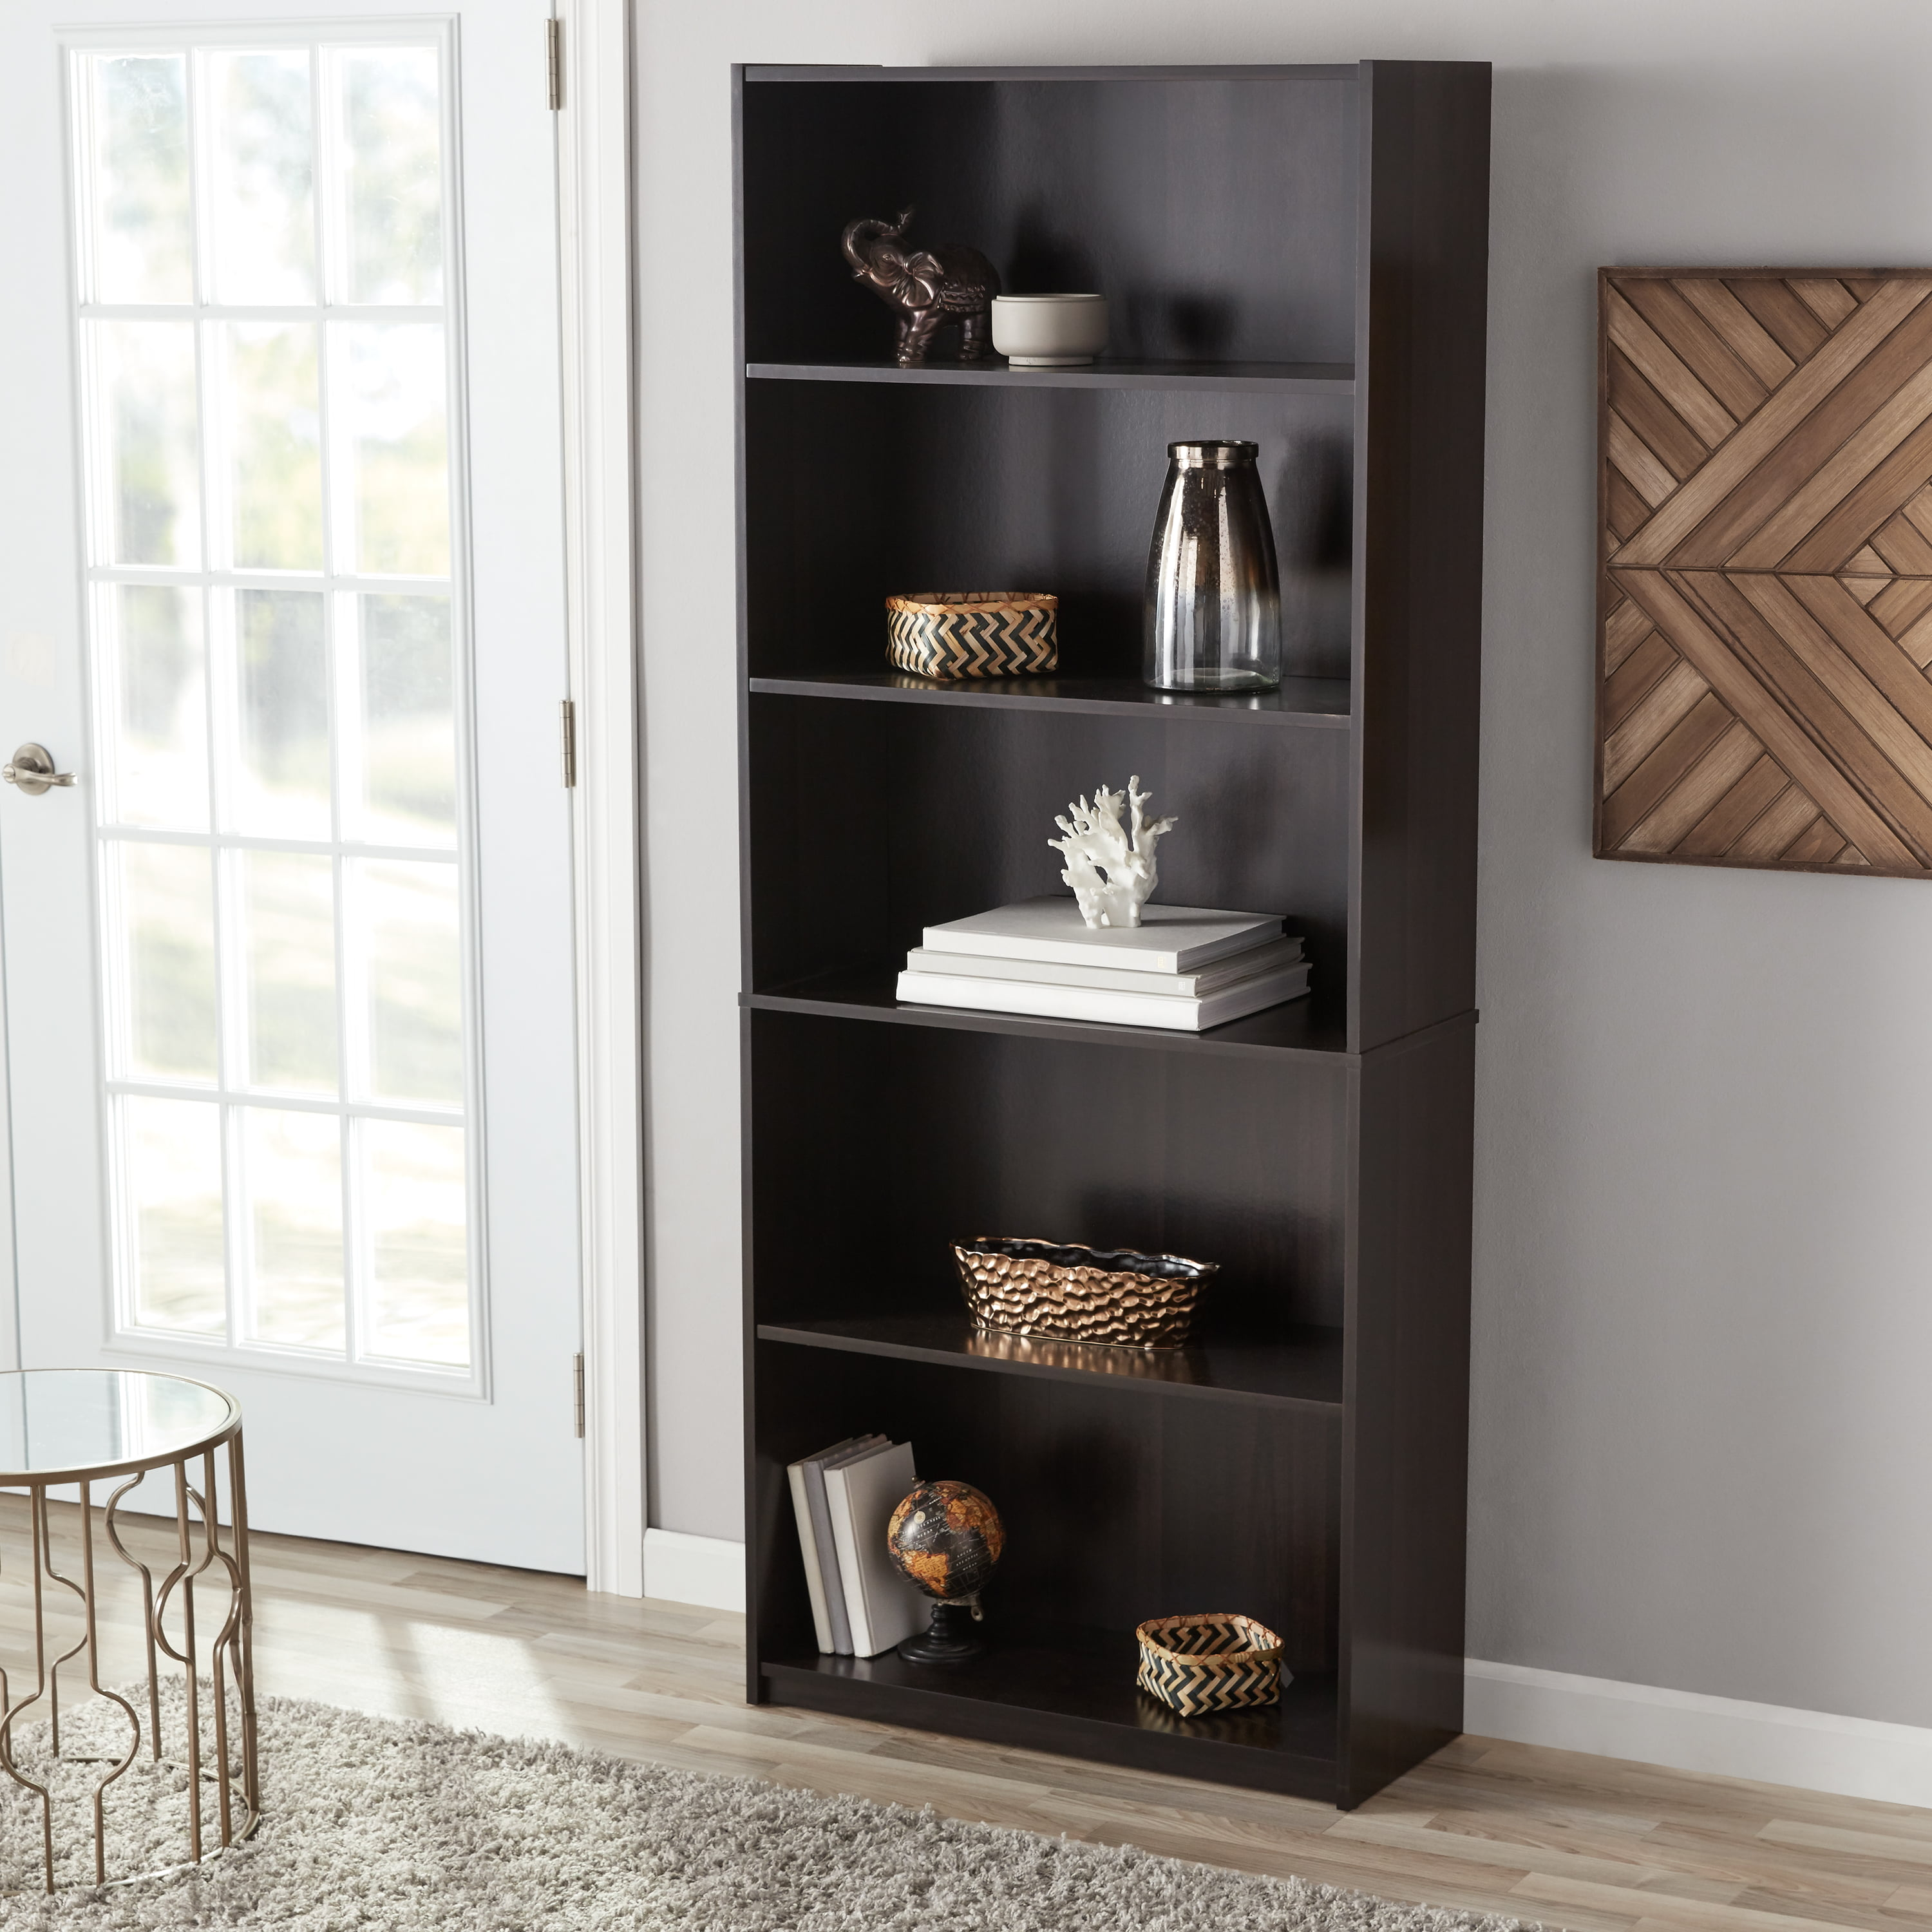 Mainstays 71 5 Shelf Standard Bookcase Multiple Colors Spaghetti How Do I Wire This Switch Page2 Doityourselfcom